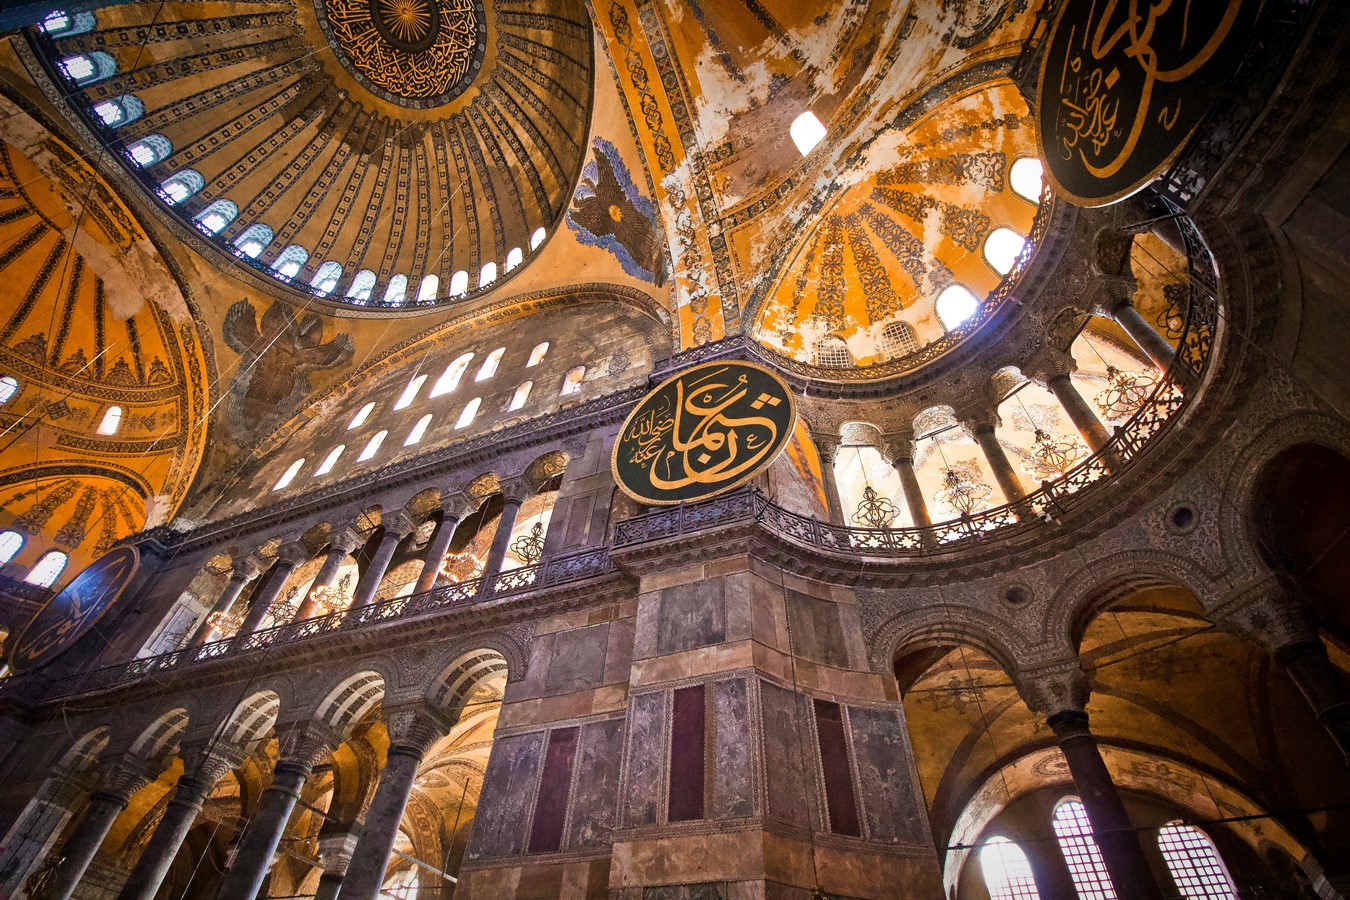 10 things you didn't know about Hagia Sophia - Sheet12